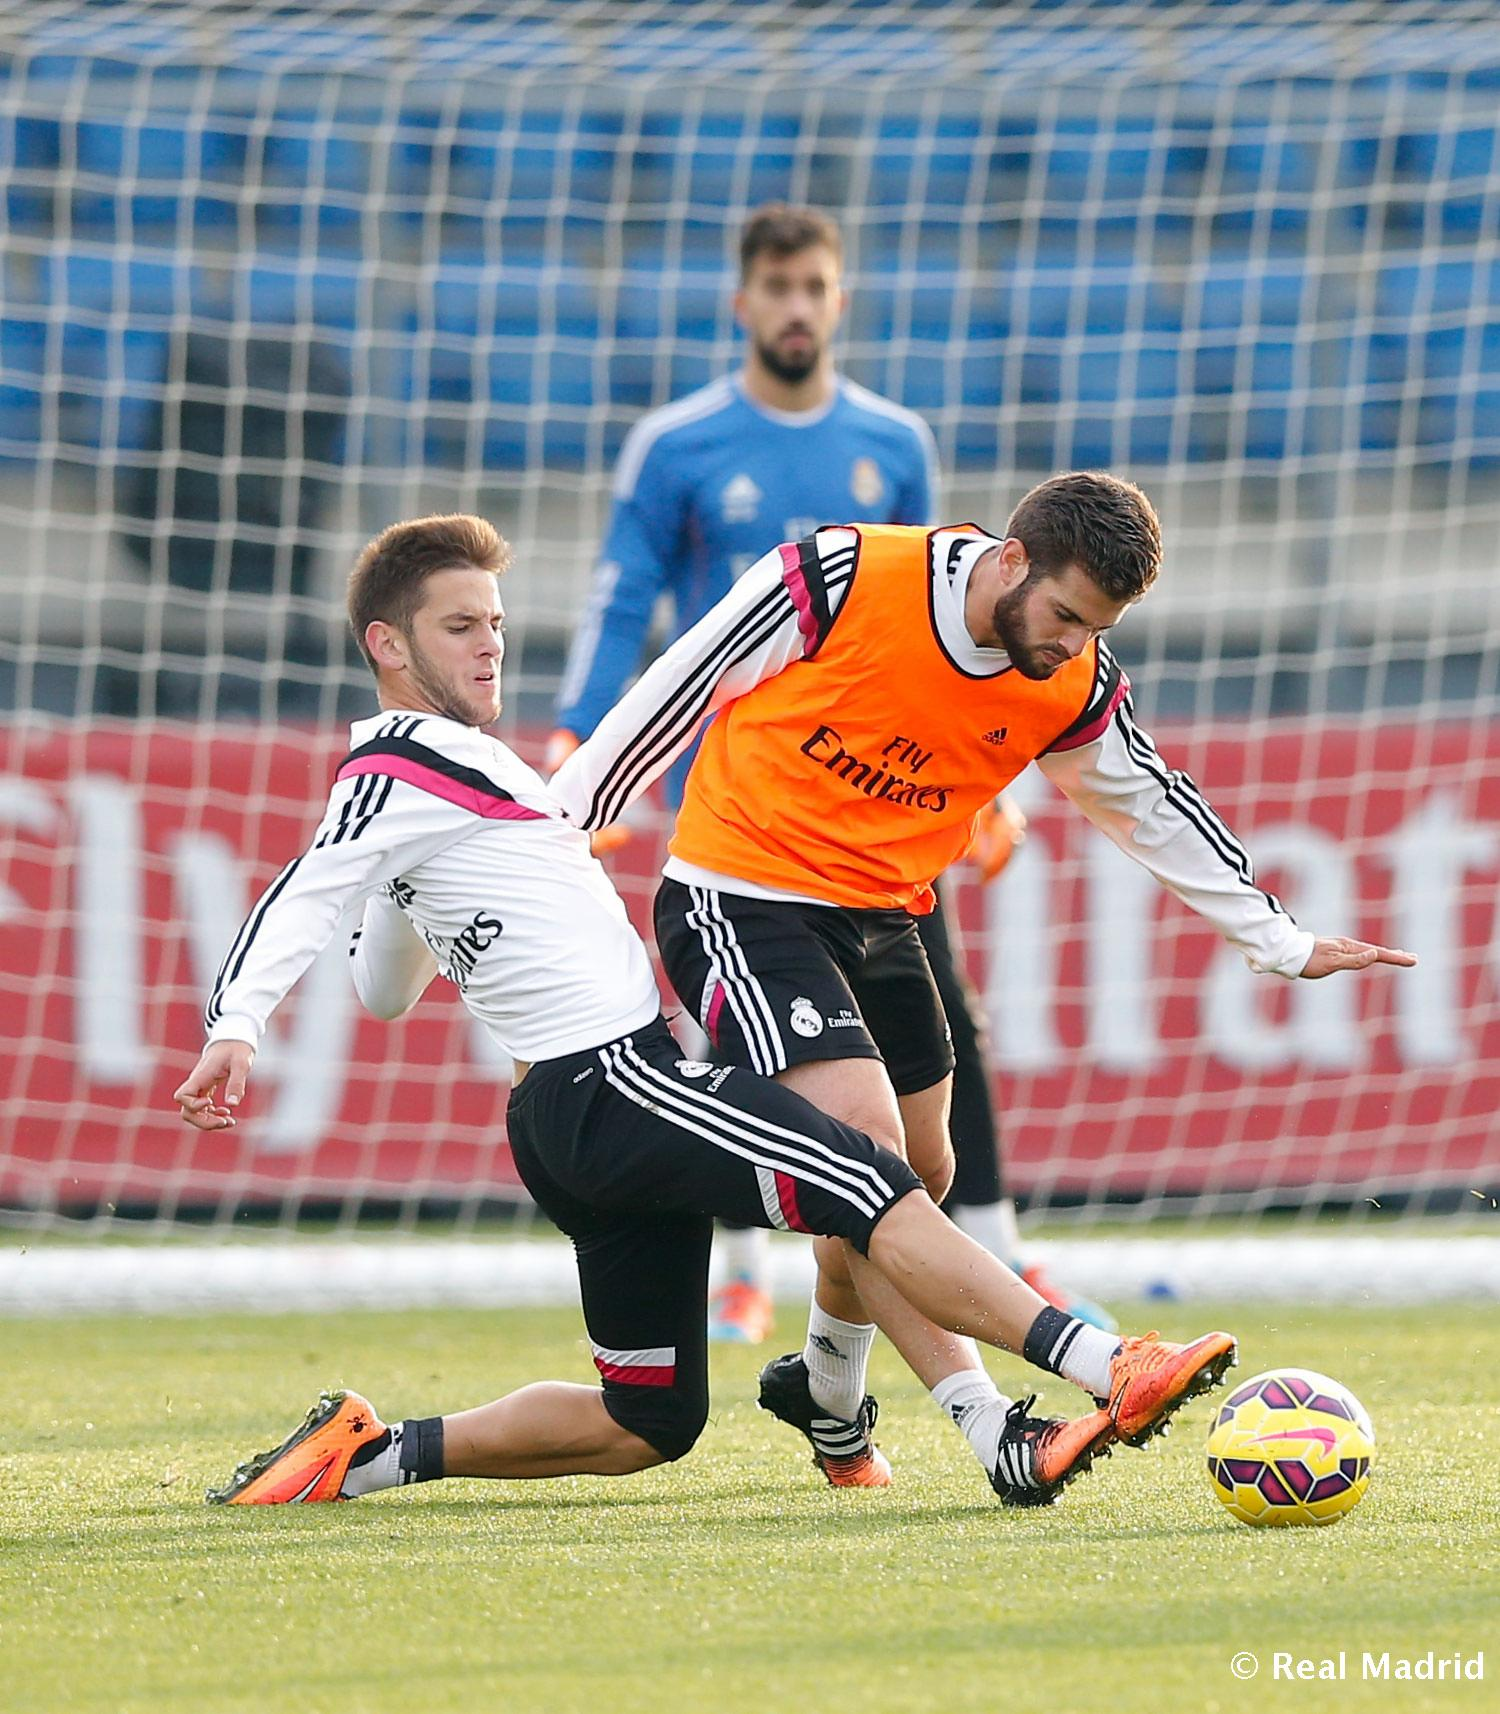 Real Madrid - Entrenamiento del Real Madrid - 18-11-2014